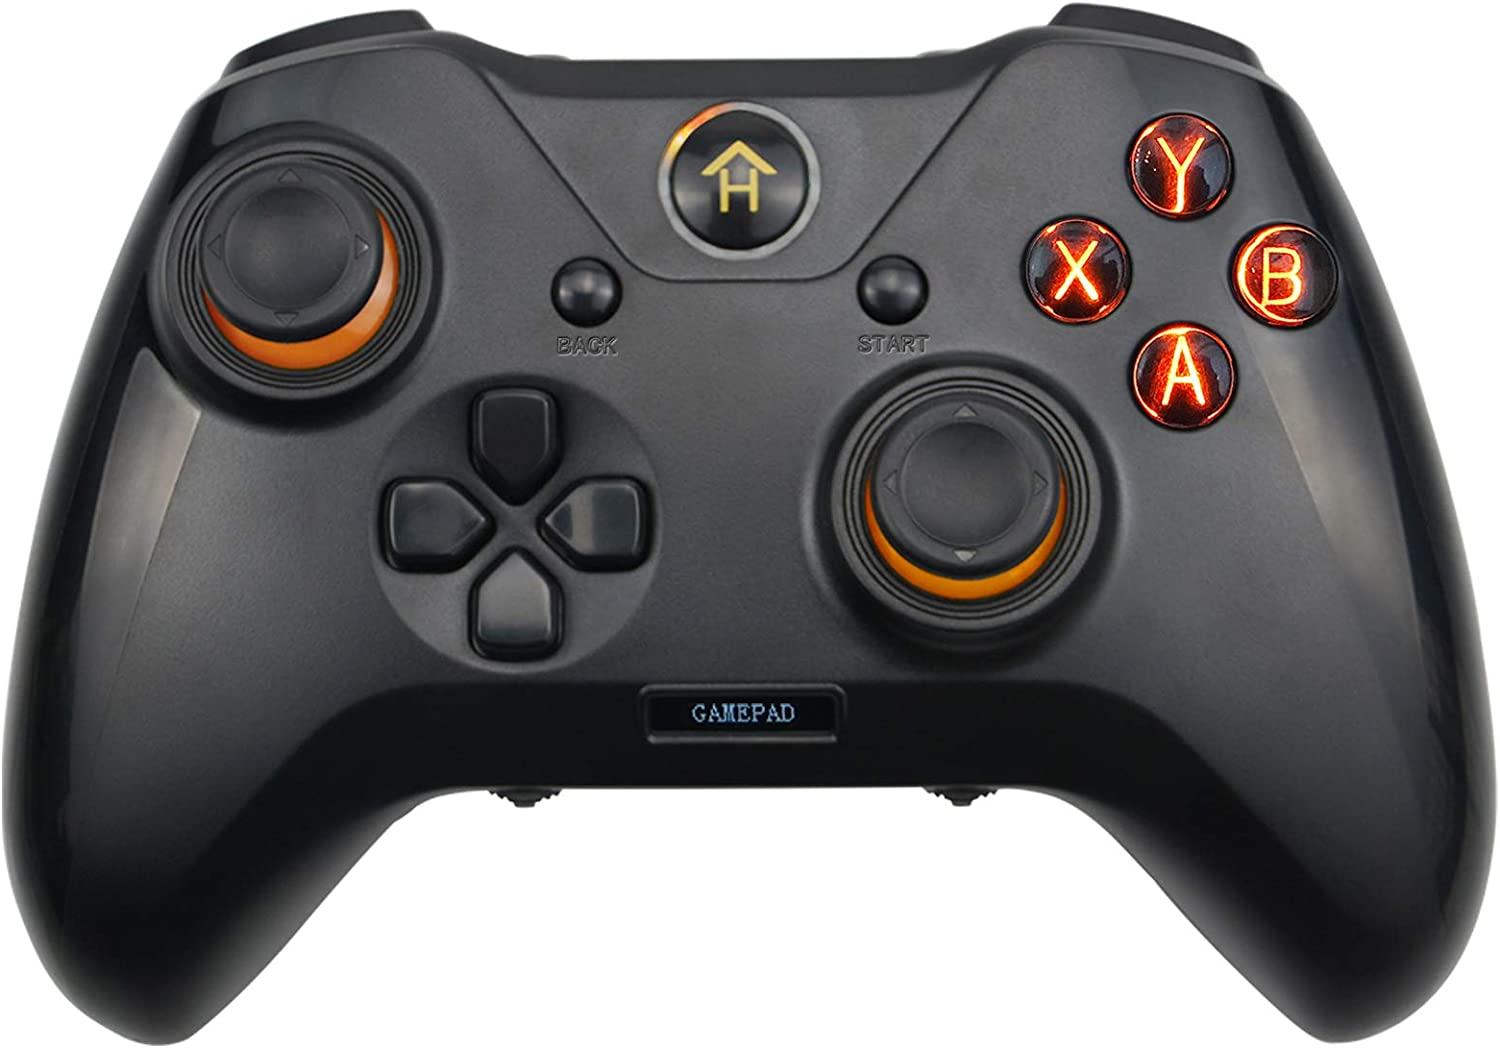 A Adwits Wired Programmable Gamepad, 3-in-1 USB Gaming Controller for Windows PC Playstation 3 Android, Improved Ergonomic Design with Shoulders Buttons Dual Vibration, Black